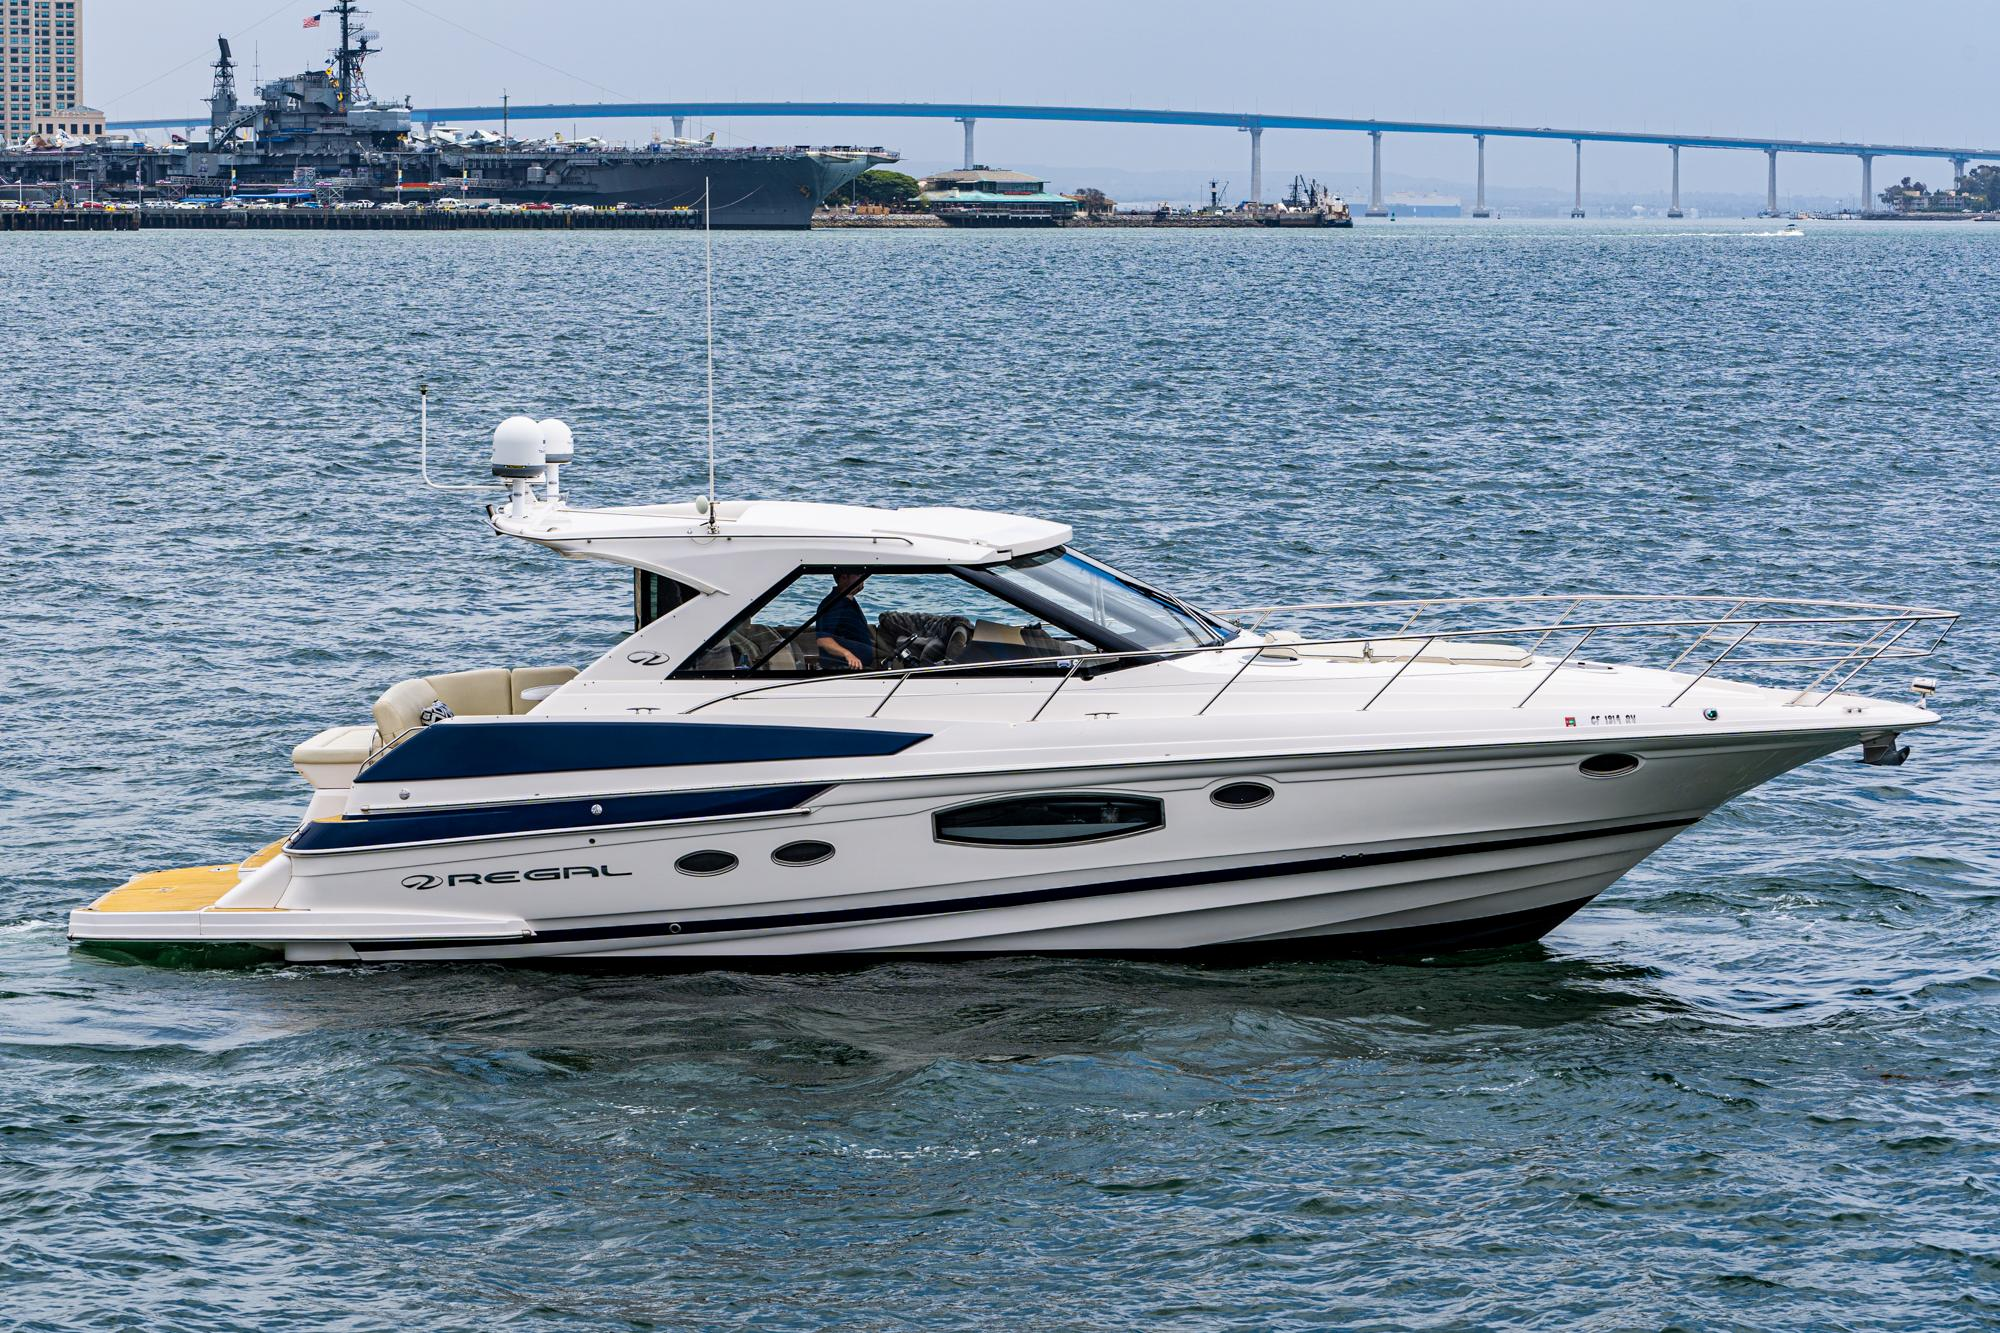 2015 Regal 46 Sport Coupe #TB080RM inventory image at Sun Country Coastal in San Diego